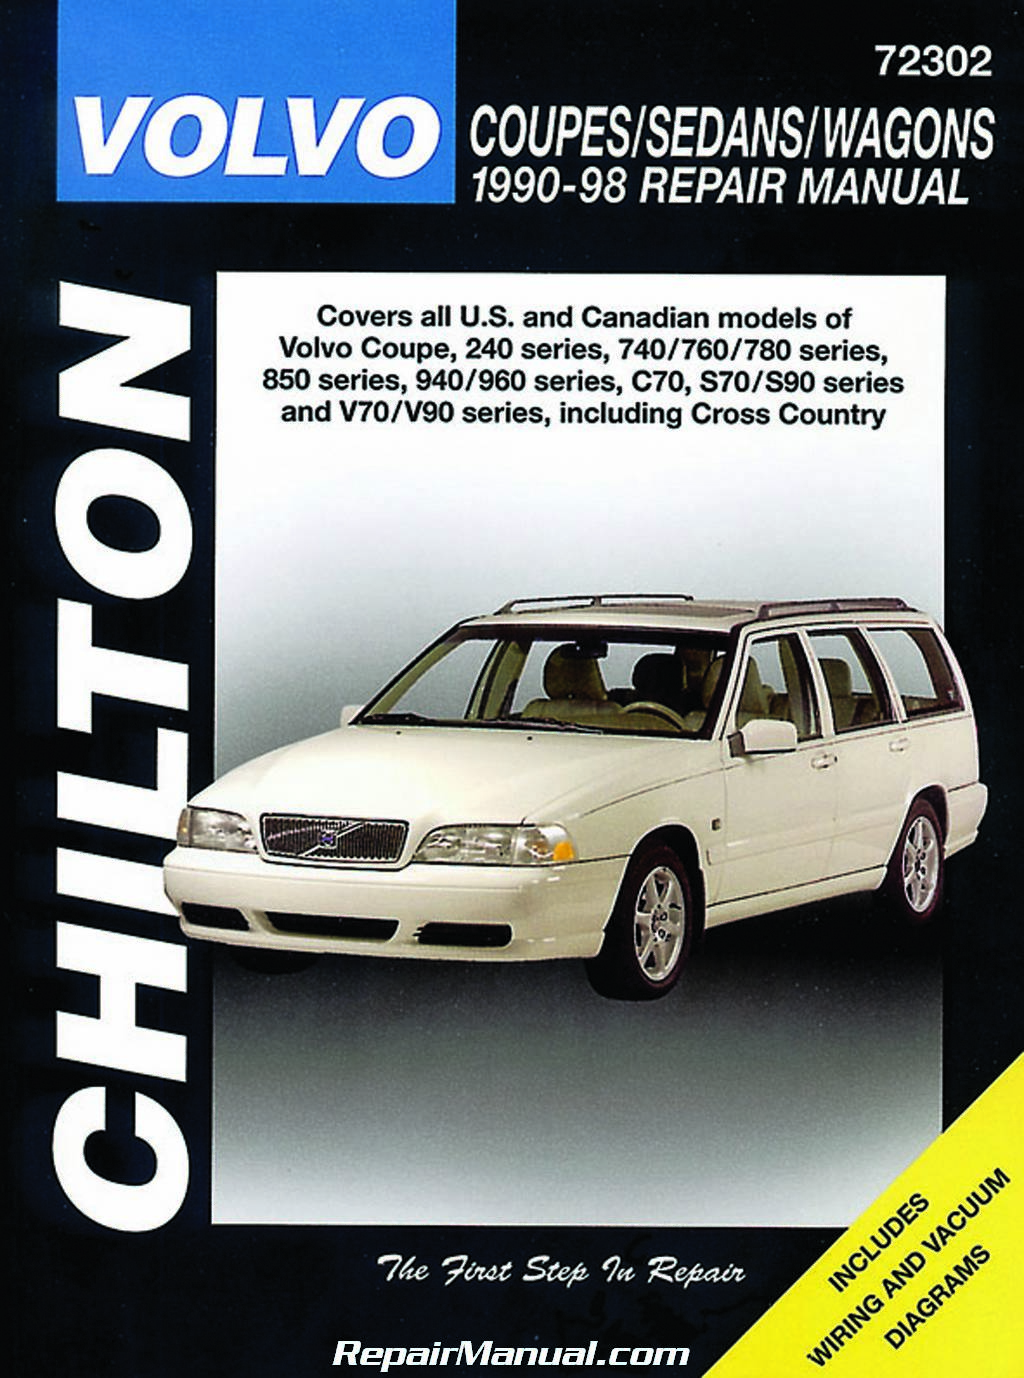 Chilton Volvo Coupes Sedans Wagons 1990